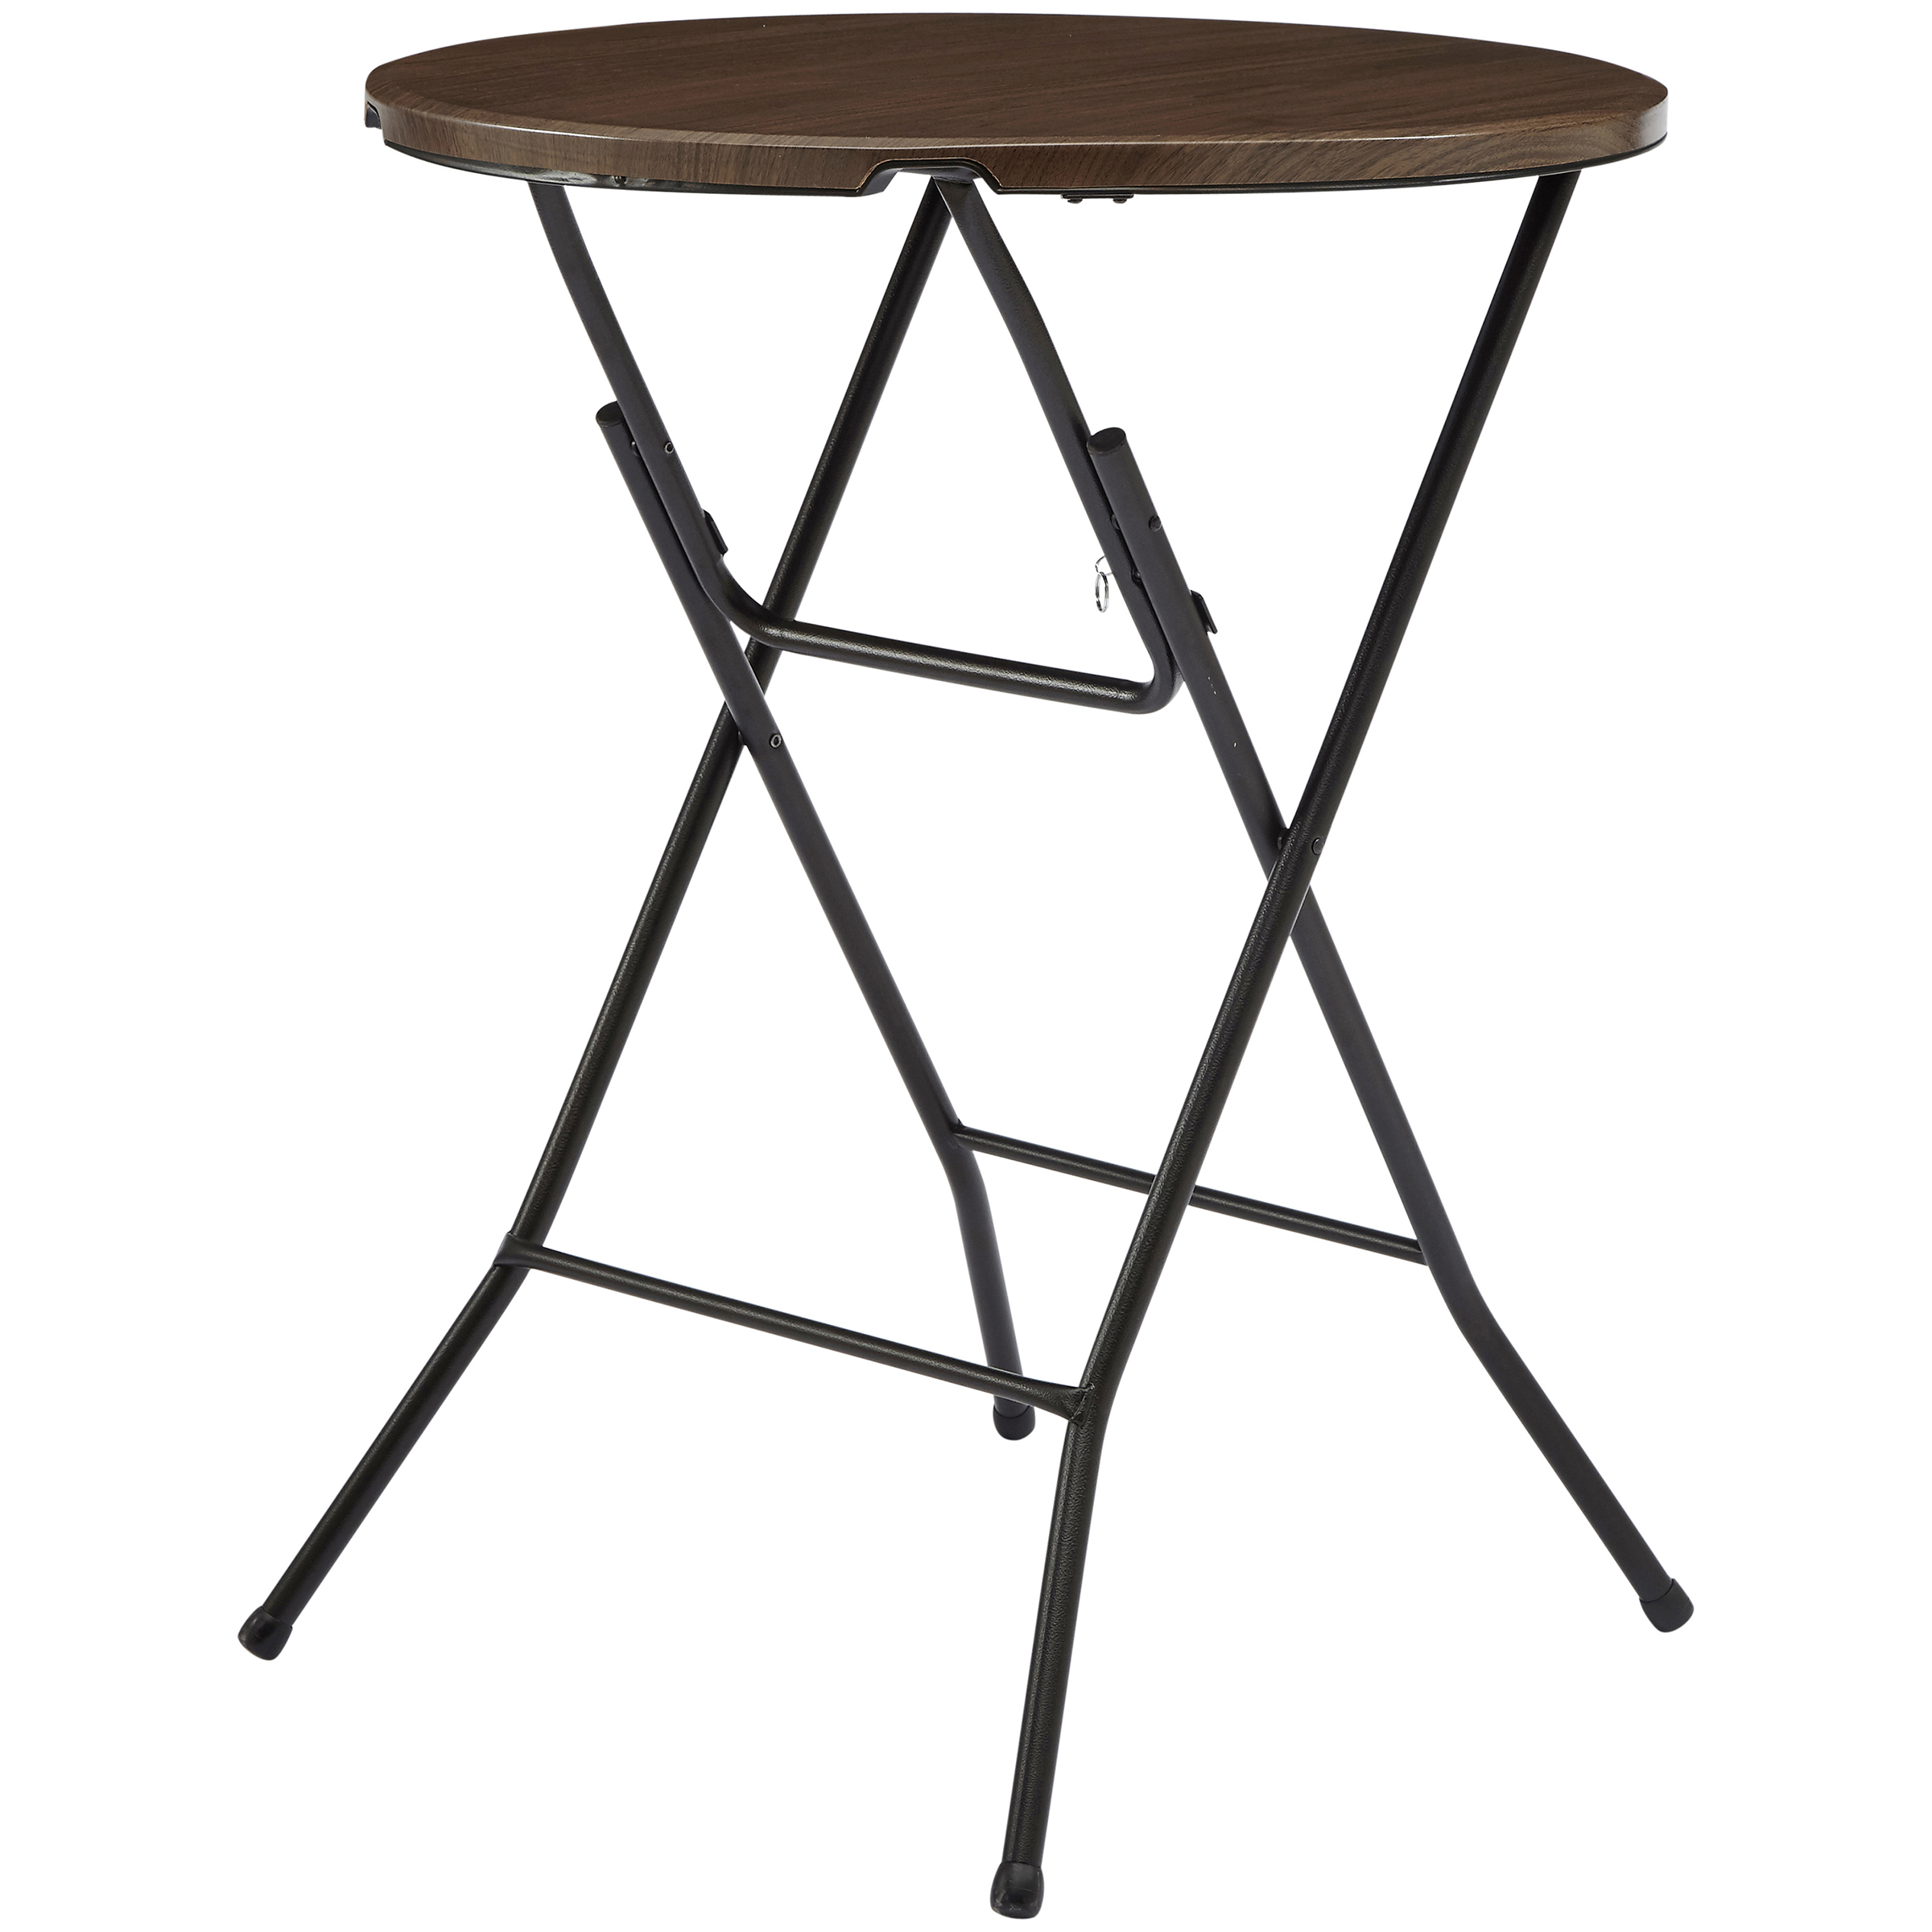 Wondrous 31 Round High Top Table 40 Height Plastic Folding W Laminated Top Ocoug Best Dining Table And Chair Ideas Images Ocougorg